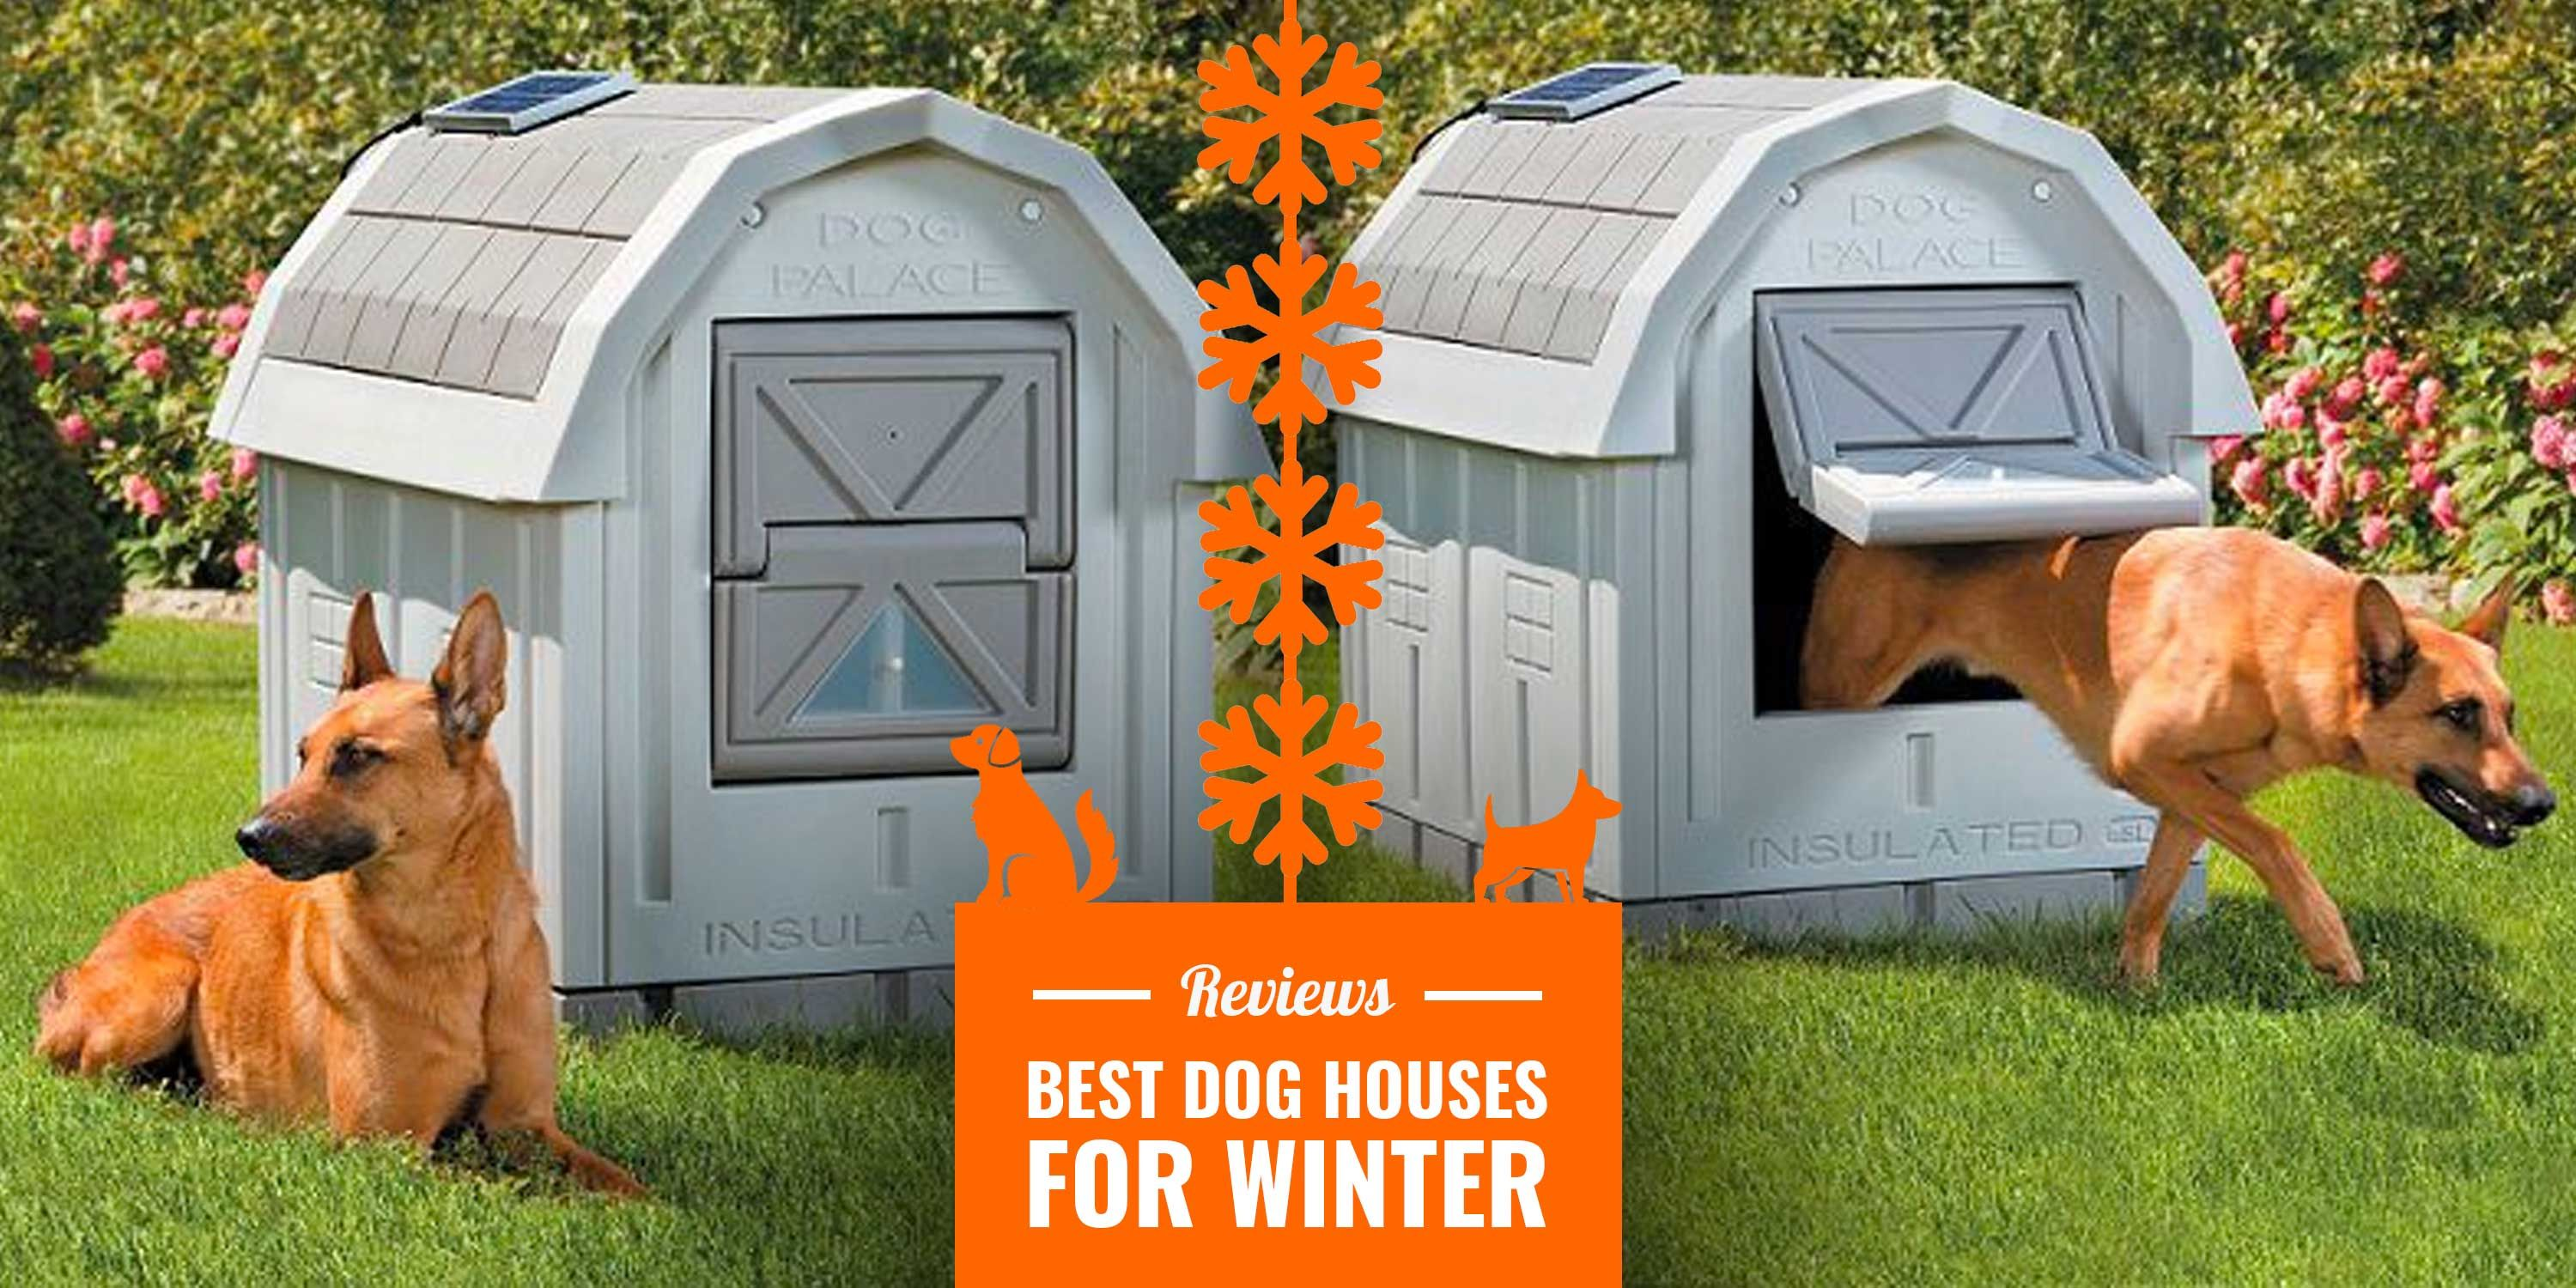 10 Best Dog Houses for Winter — Reviews, Insulation, Tips